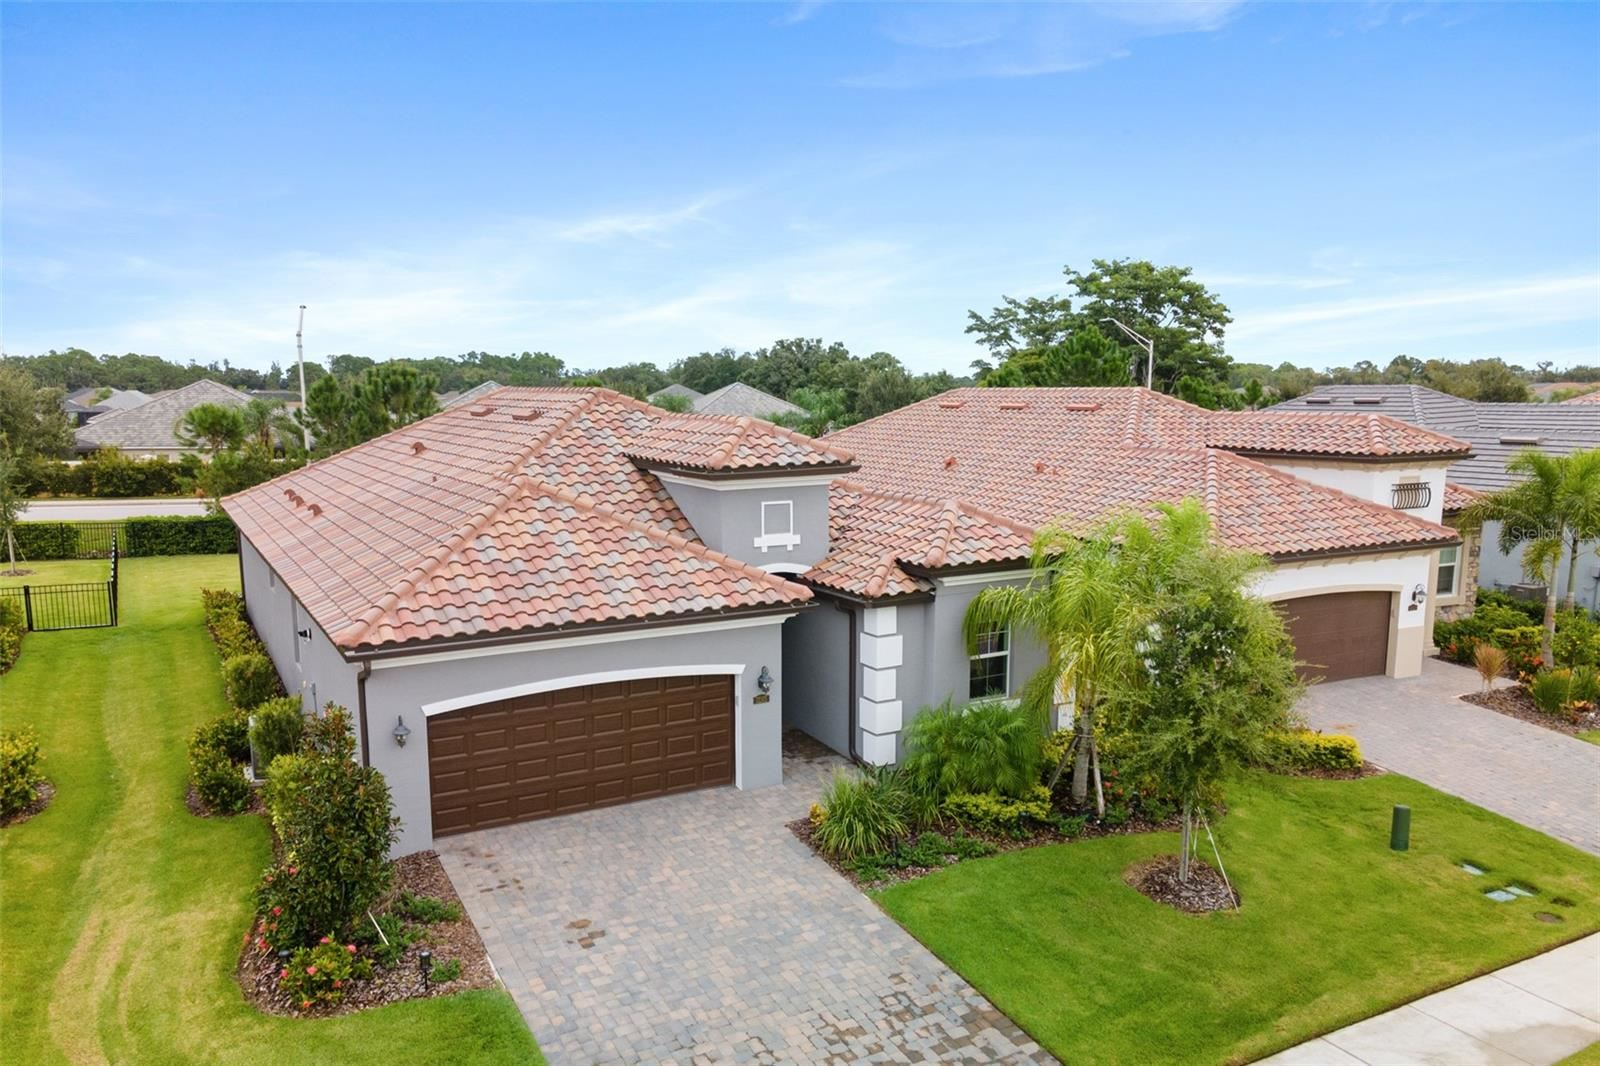 Photo of 12315 PERENNIAL PLACE, LAKEWOOD RANCH, FL 34211 (MLS # A4512668)